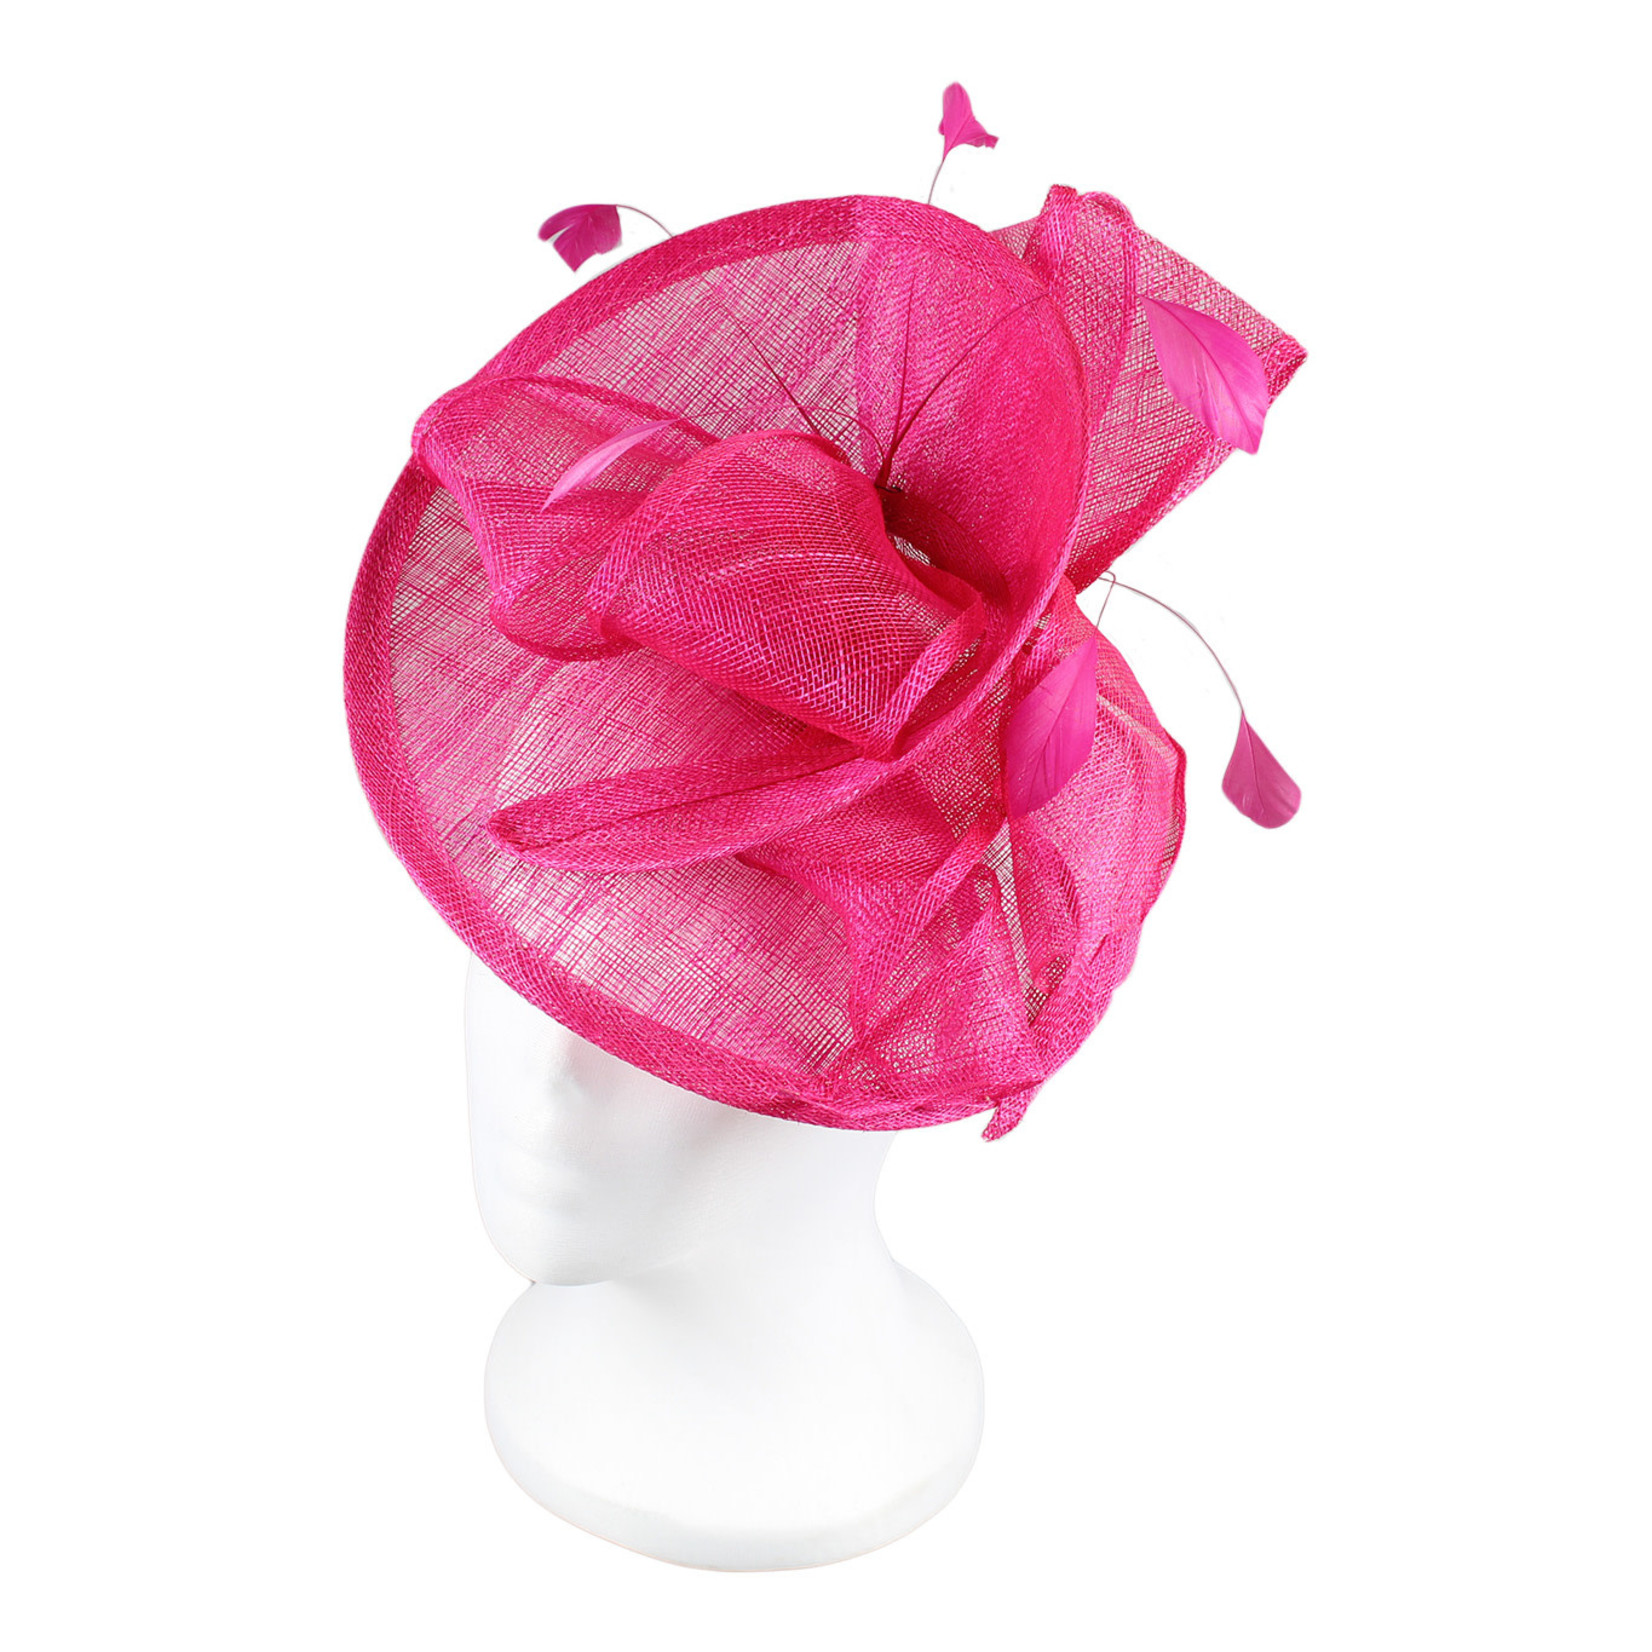 Jeanne Simmons Fascinator Headband w/ Fuchsia Feathers and Bow on Partial Sinamay Disc